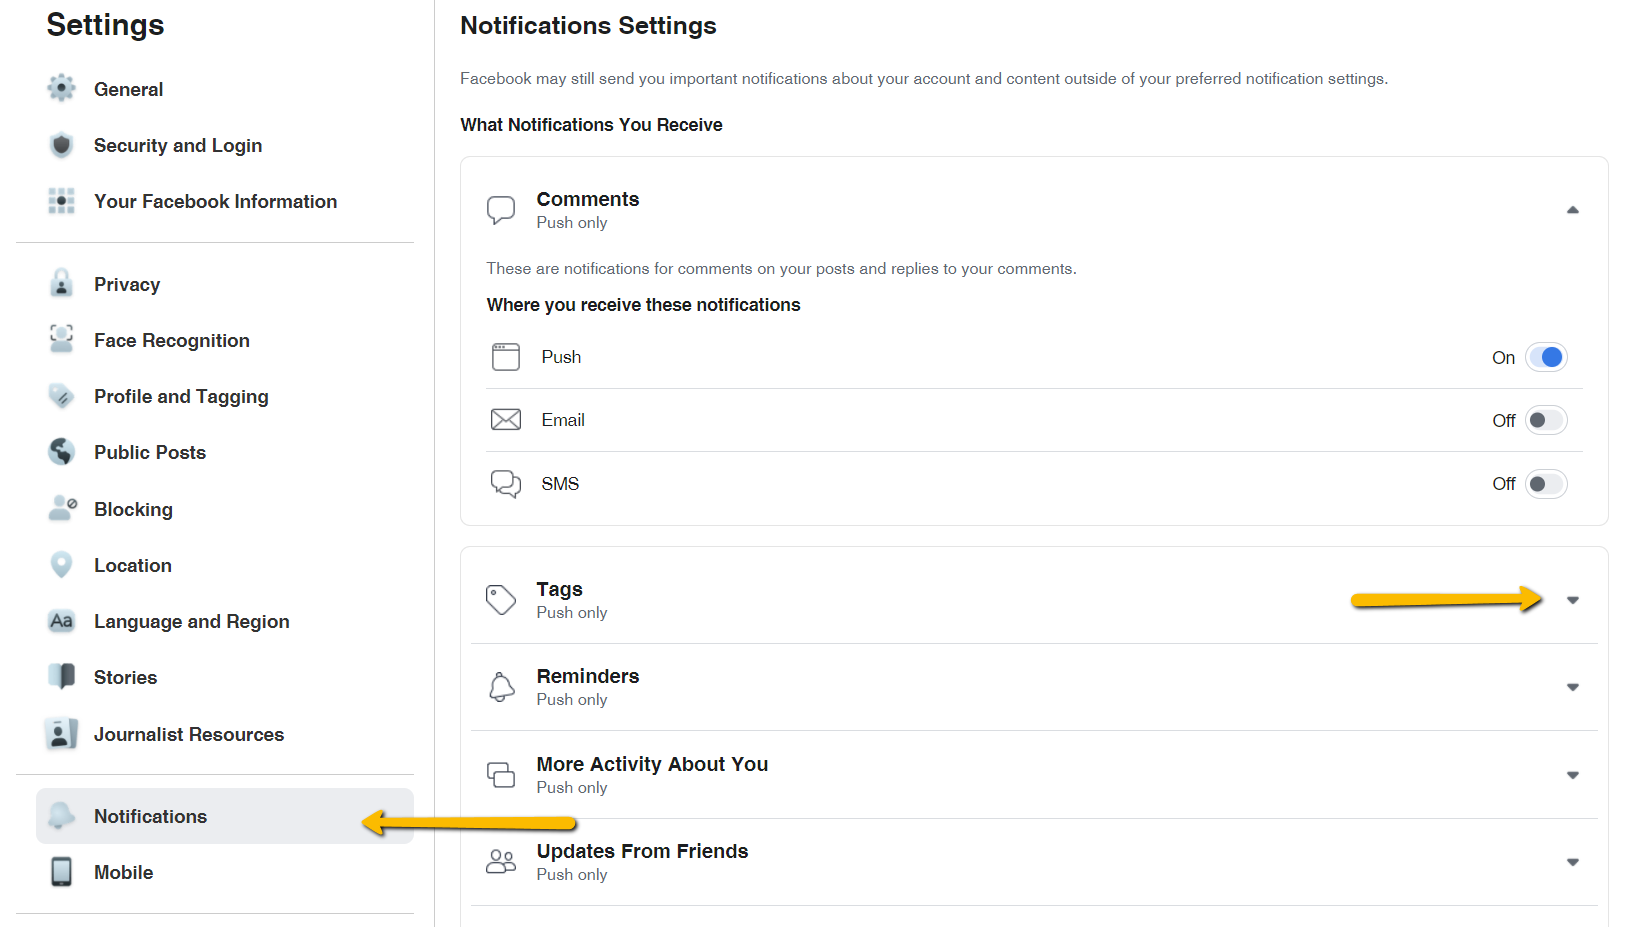 All notification settings are easily accessible in one place.